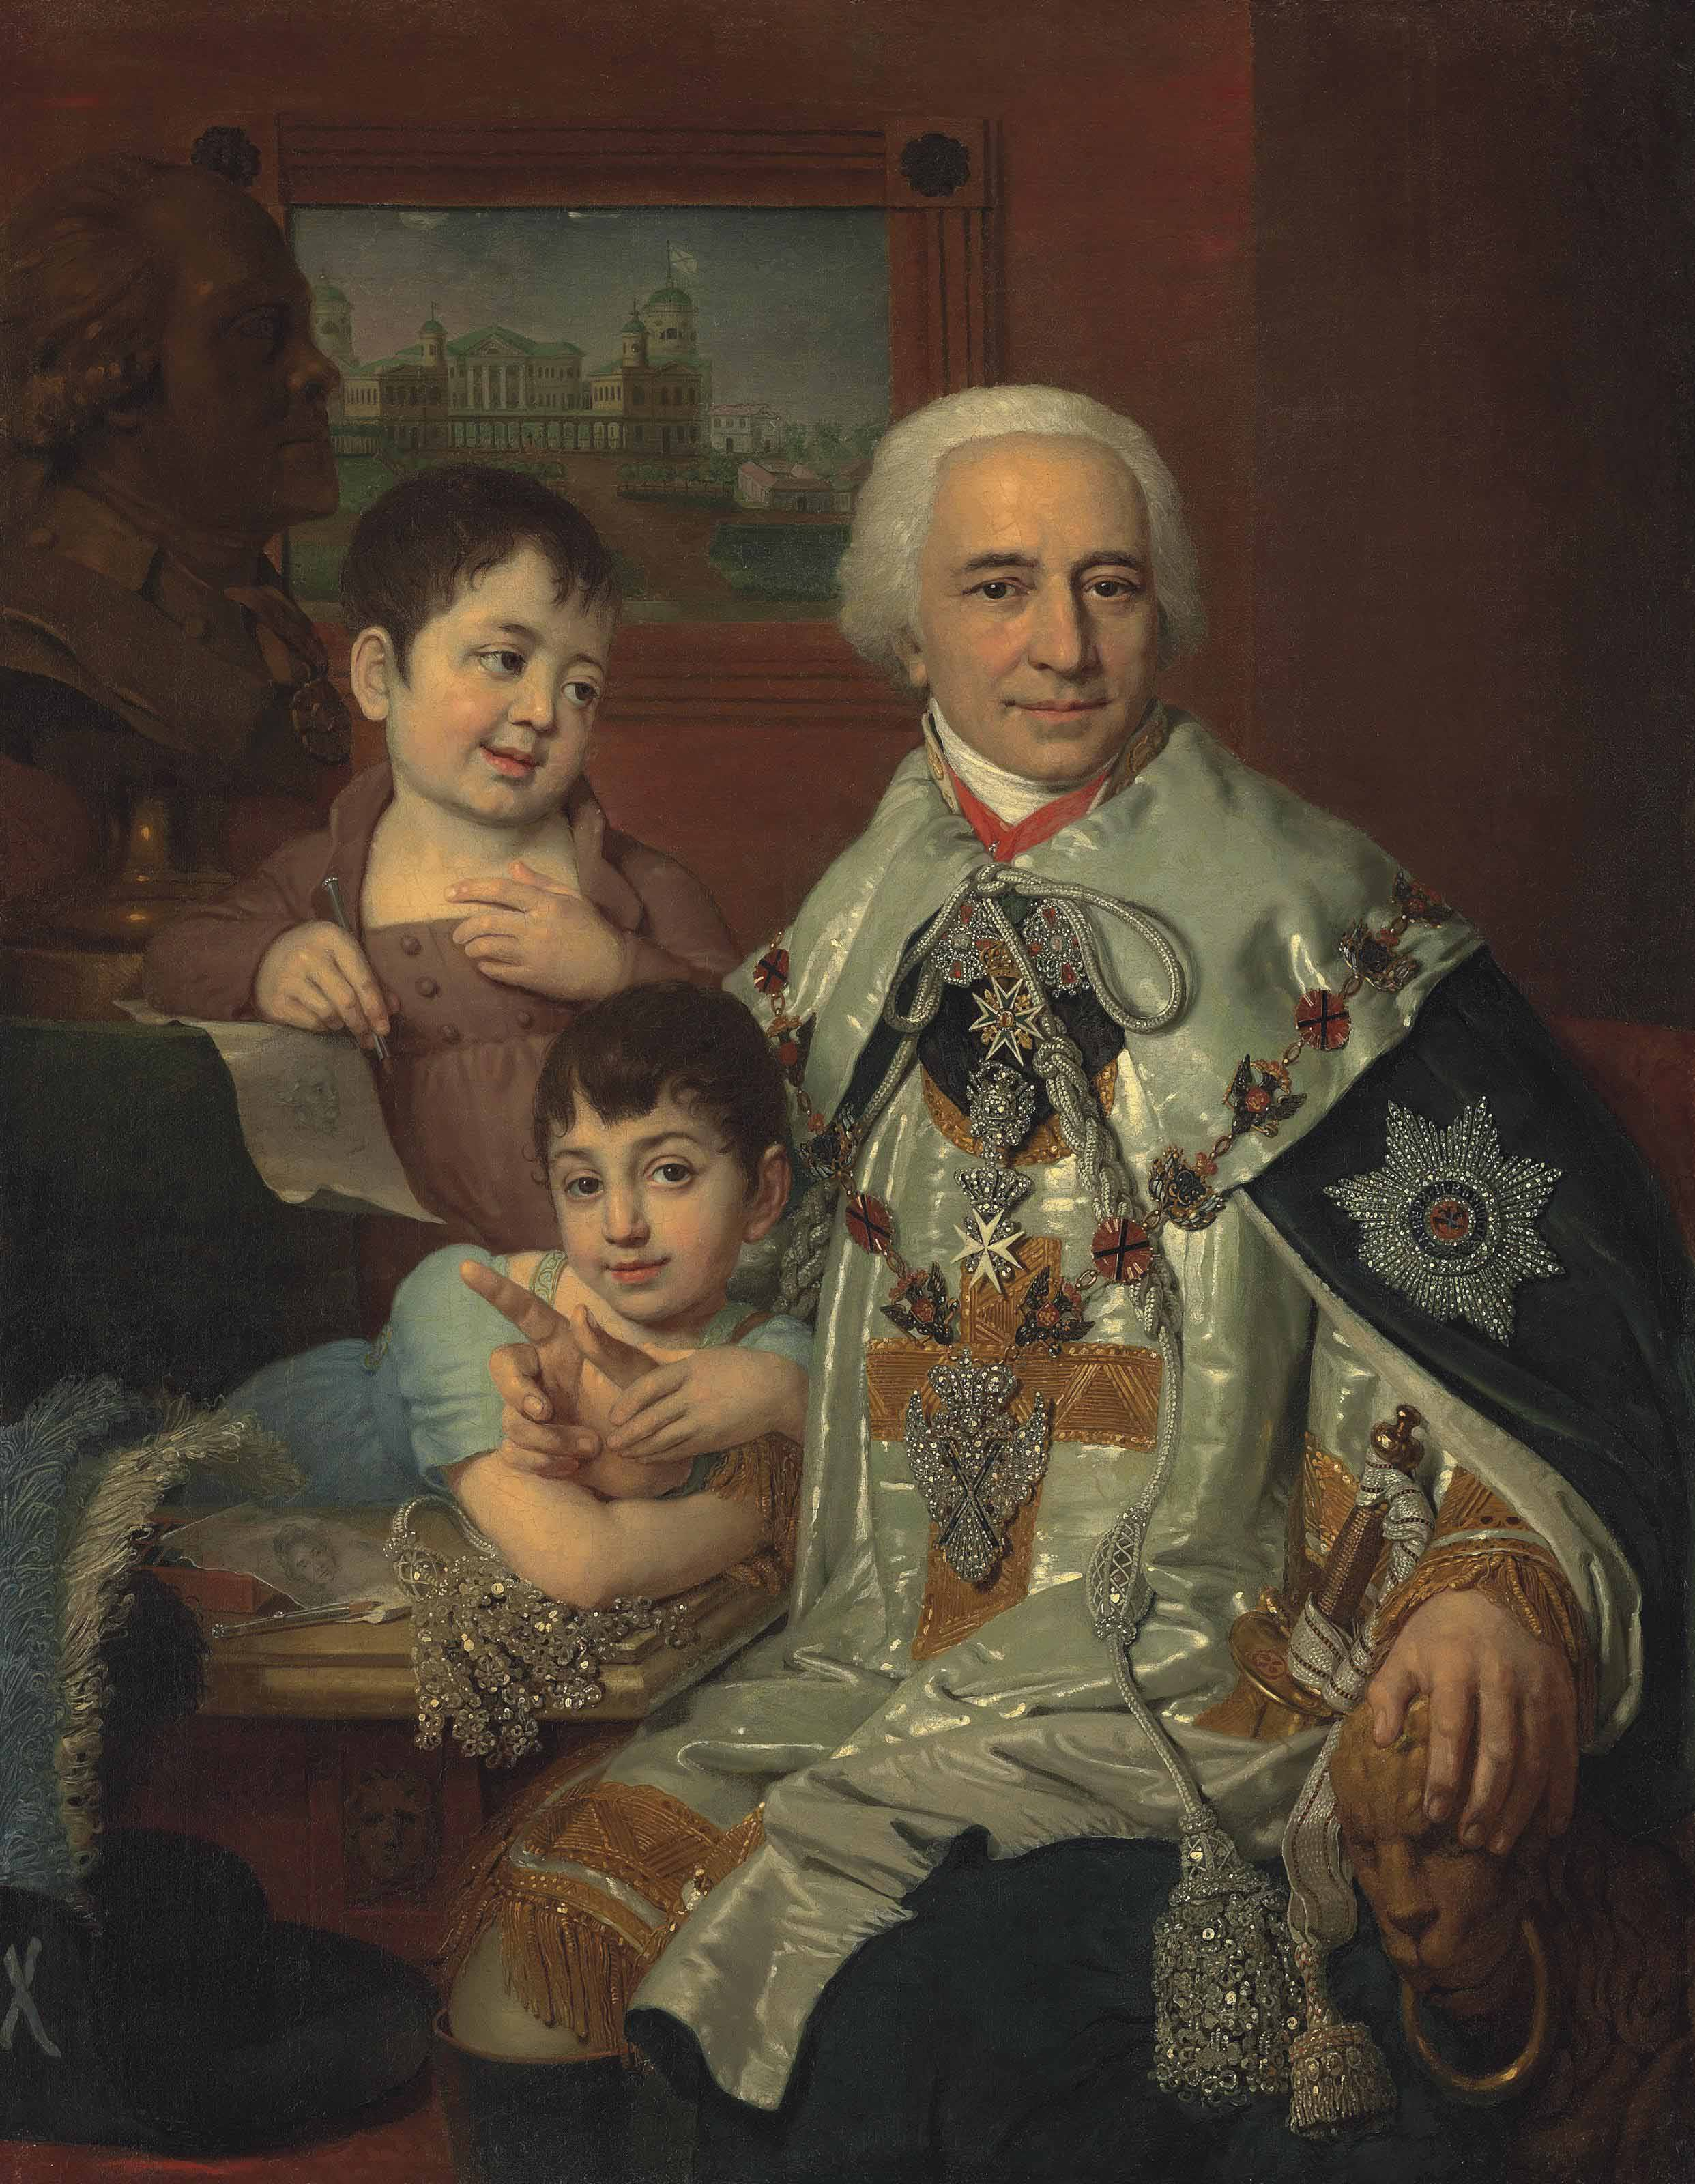 Portrait of Admiral Count Grigorii Grigorievich Kushelev (1754-1833), wearing the ceremonial costume of the Order of St Andrew, the diamond order of St Andrew with necklace, the Order of Malta with diamonds and the Order of St Anne and Alexander Nevskii,  with children Aleksandr (1800-1855) and Grigorii (1801-1855)